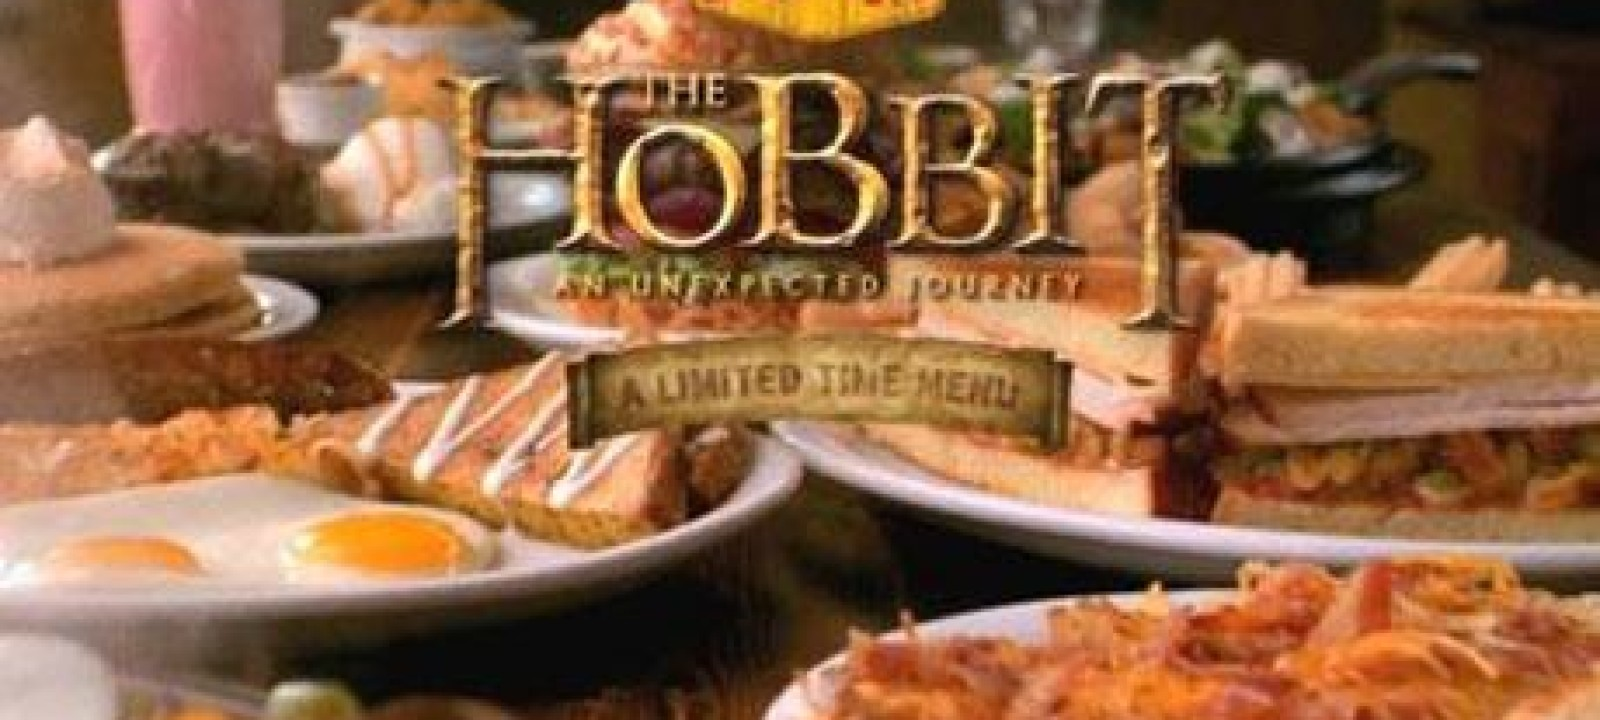 Hobbit Breakfast 460×300